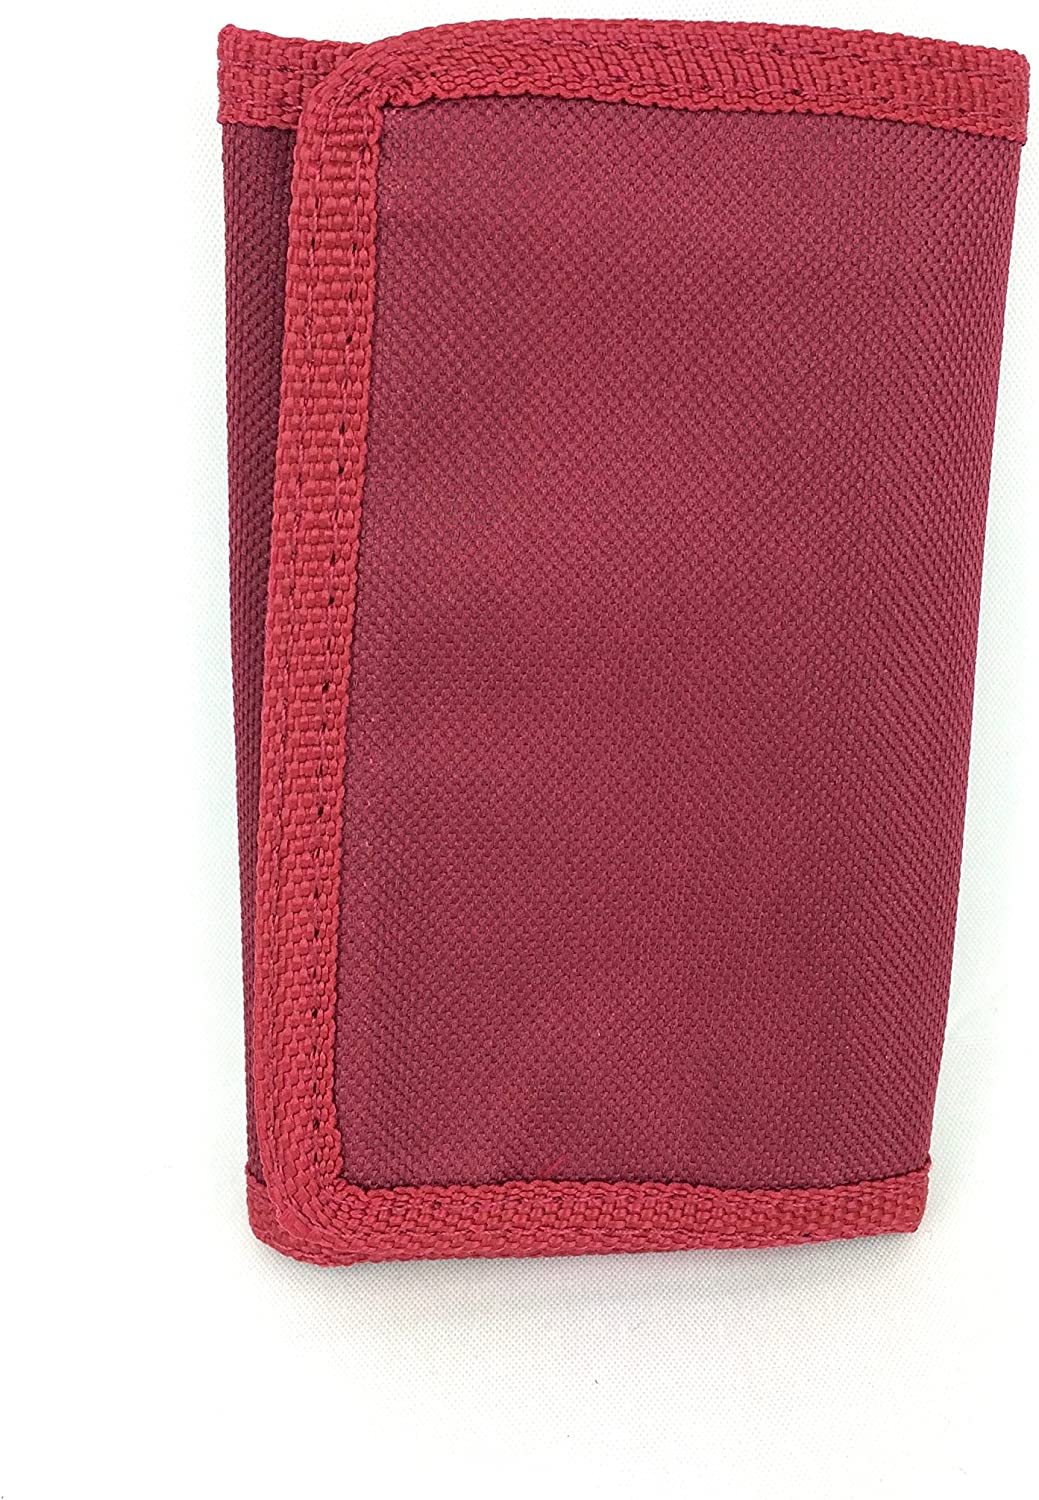 MENS LADIES BOYS GIRLS TRIFOLD CANVAS NOTES COINS SPORTS RIPPER WALLET PURSE BURGUNDY